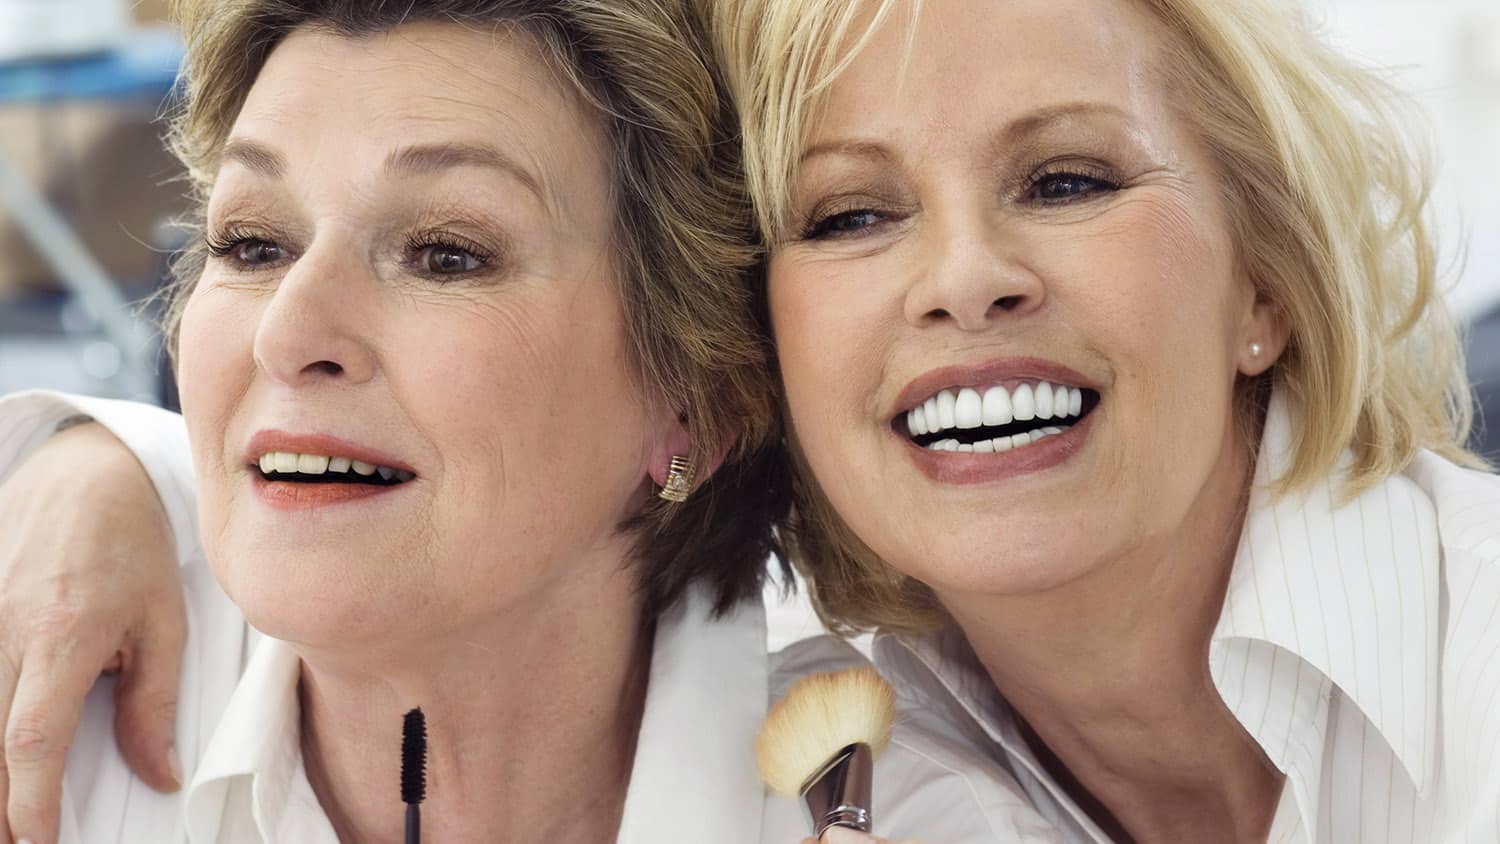 11 Exclusive Makeup Tips for Older Women from a Professional